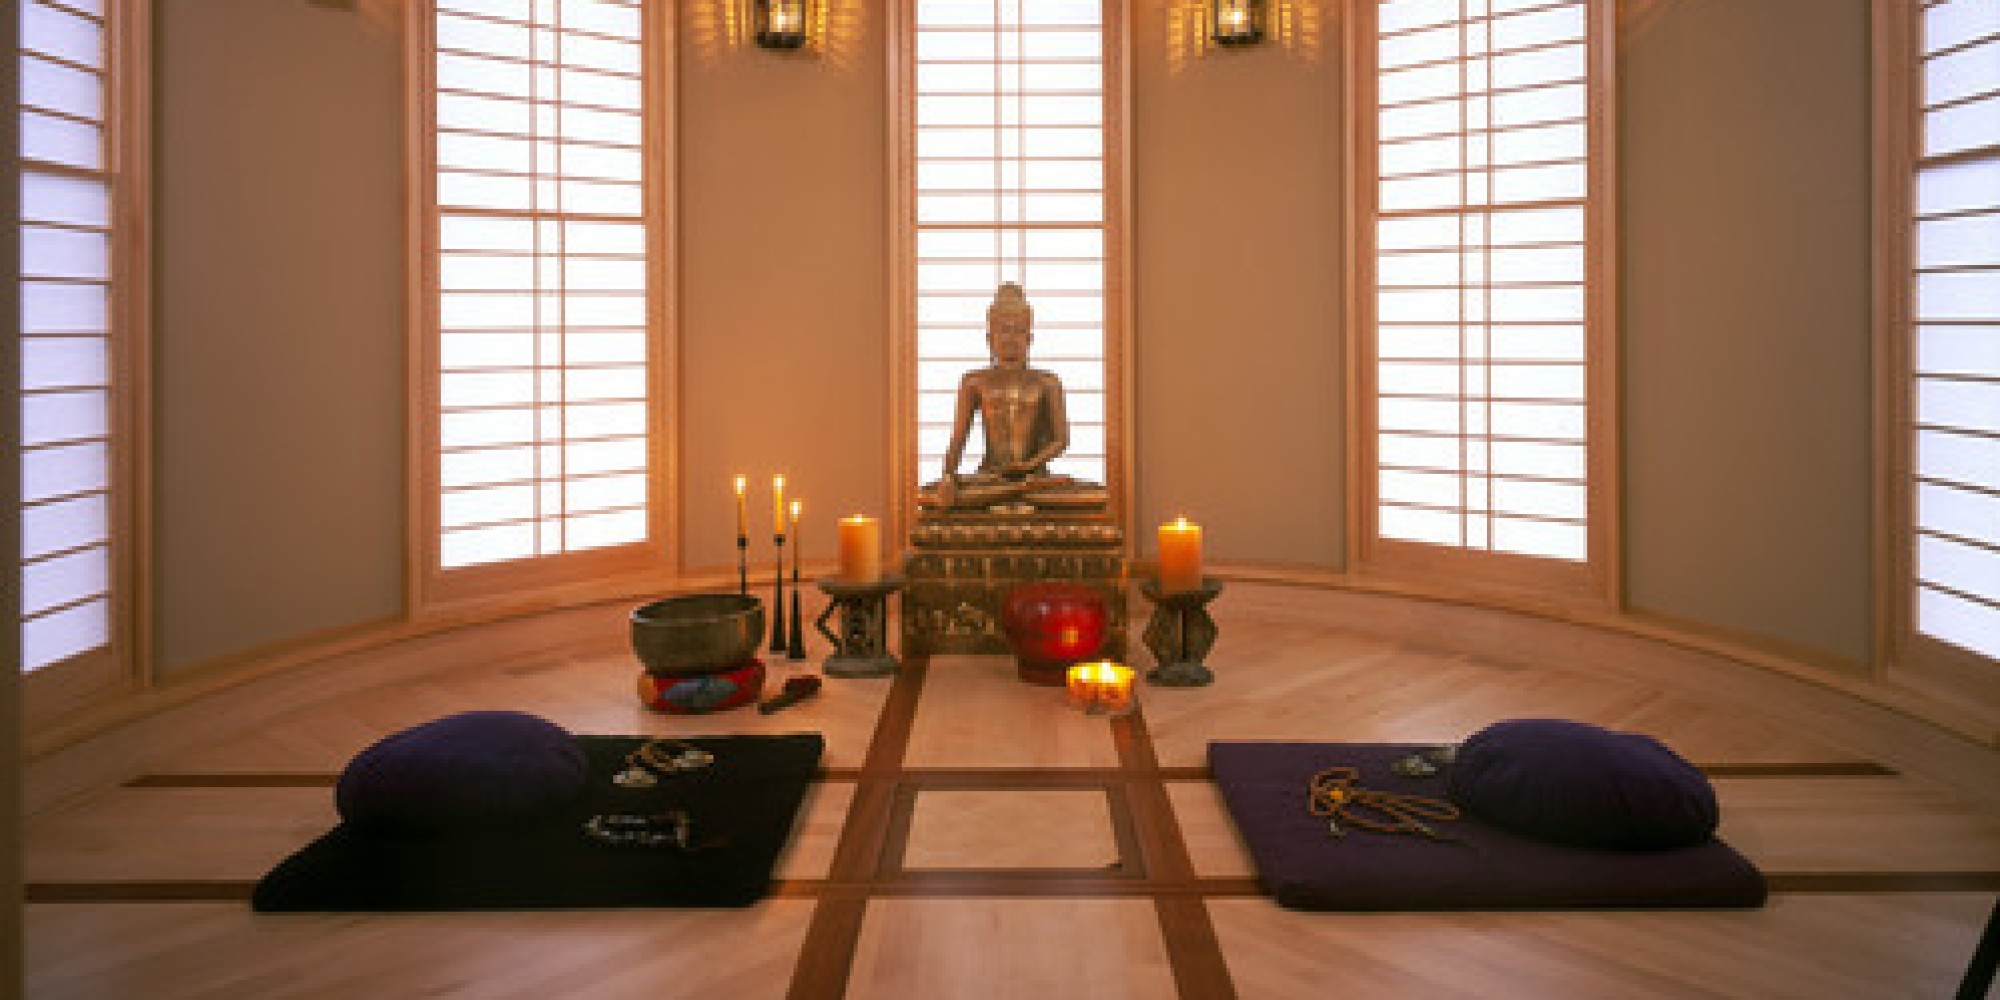 Meditation Decor Classy How To Create A Meditation Room  Kheops International Review